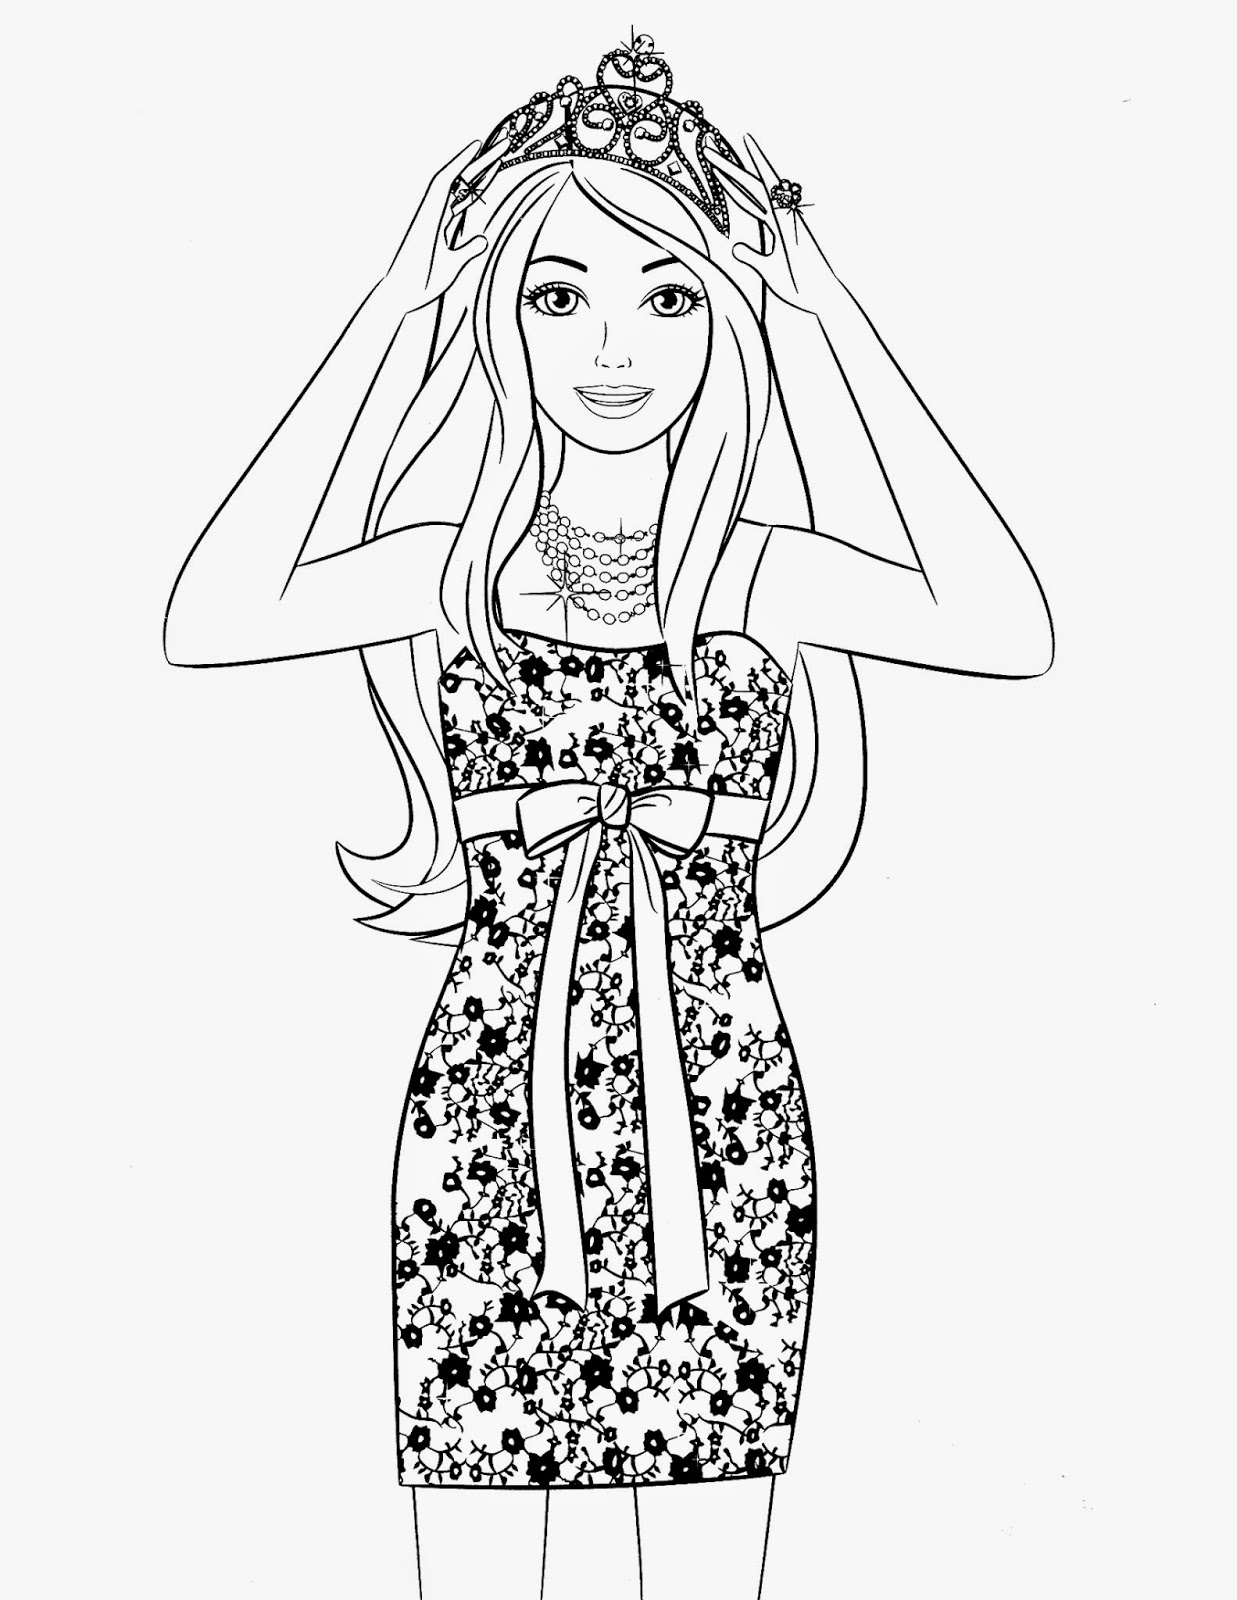 barbie coloring book barbie princess coloring pages best coloring pages for kids barbie coloring book